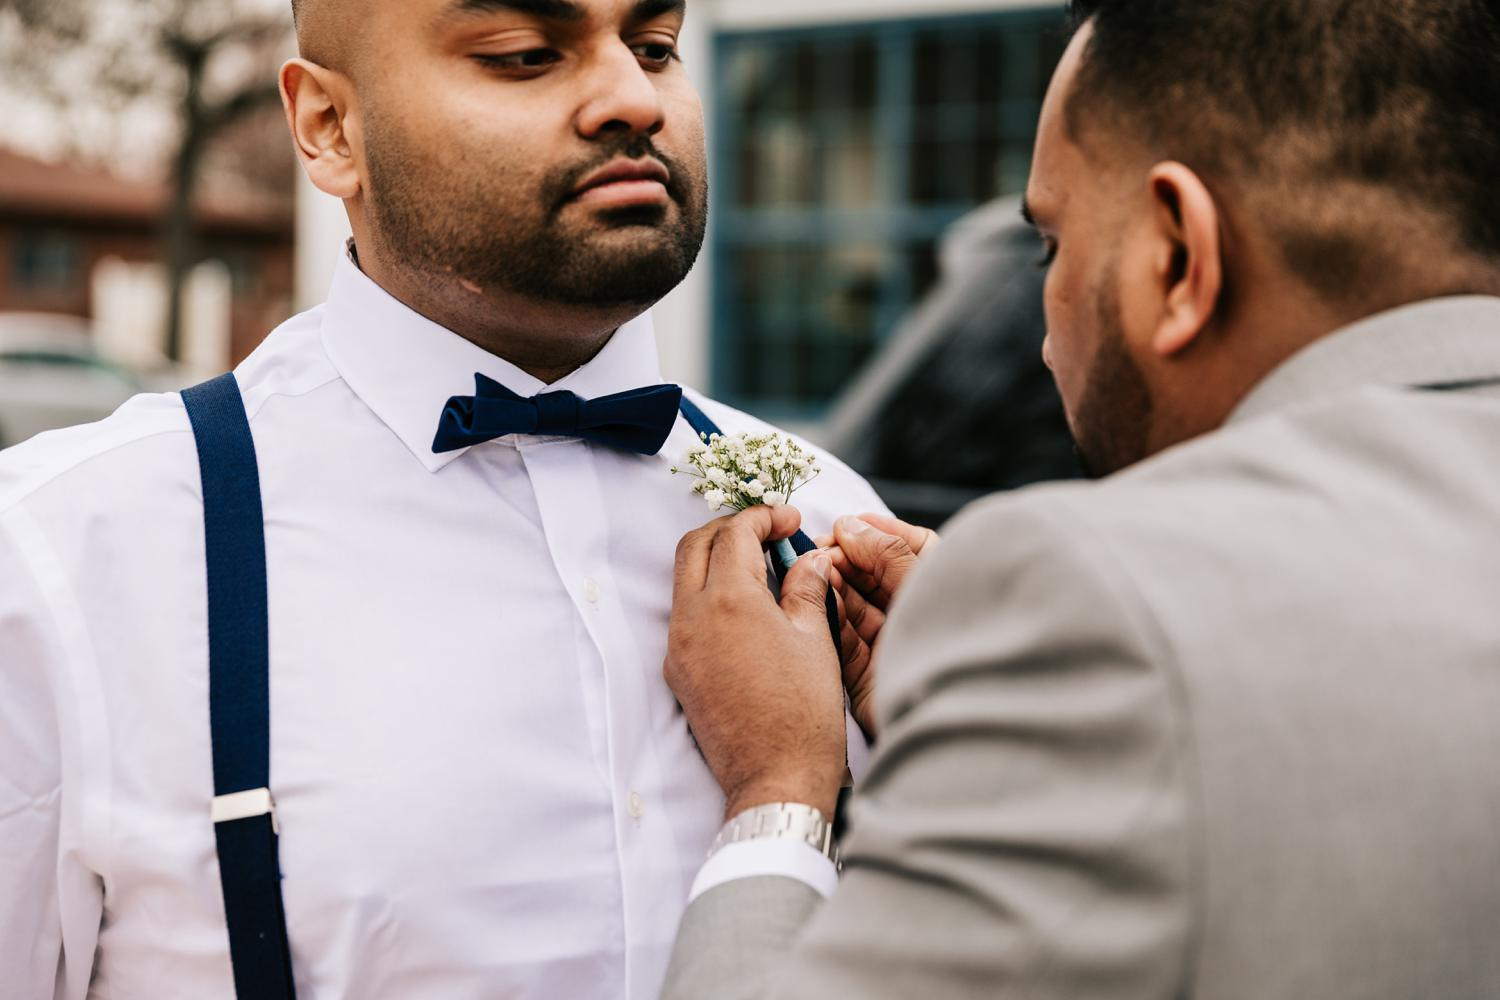 Groom pinning baby's breath flowers on best man